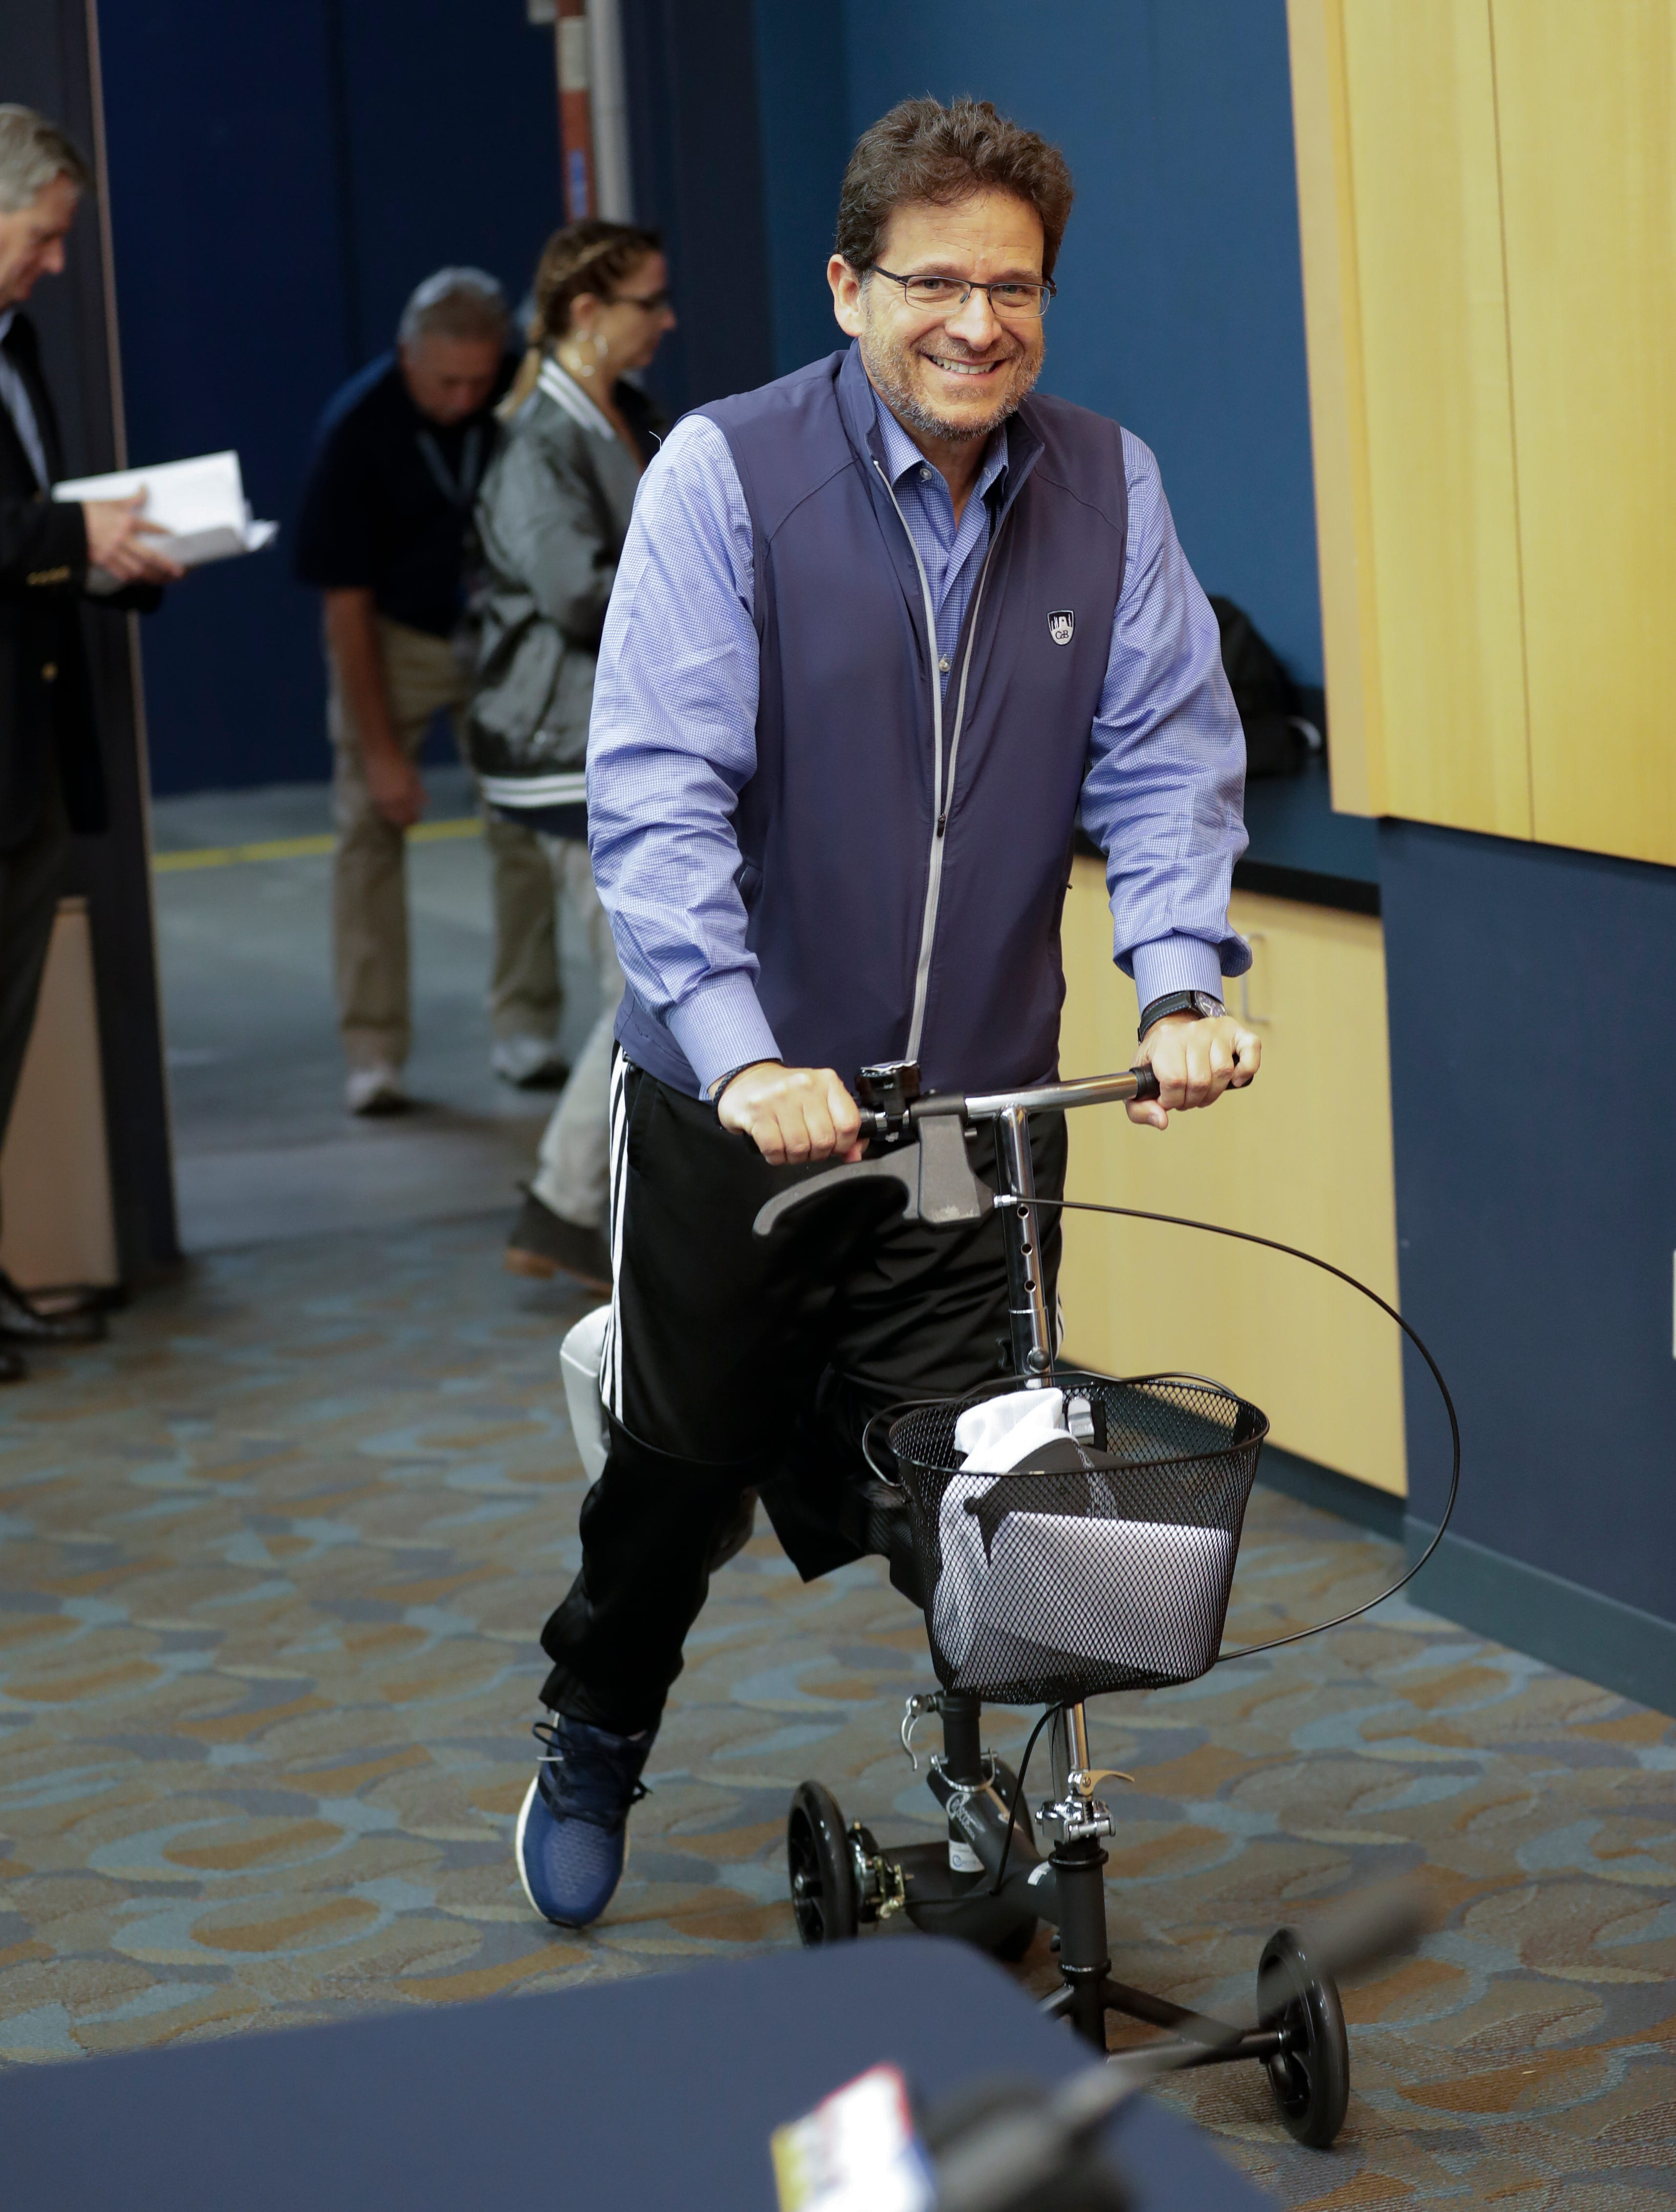 Milwaukee Brewers owner Mark Attanasio makes his way to a news conference Friday before a game between the Brewers and the Detroit Tigers. Attanasio is recovering from a torn left Achilles tendon.